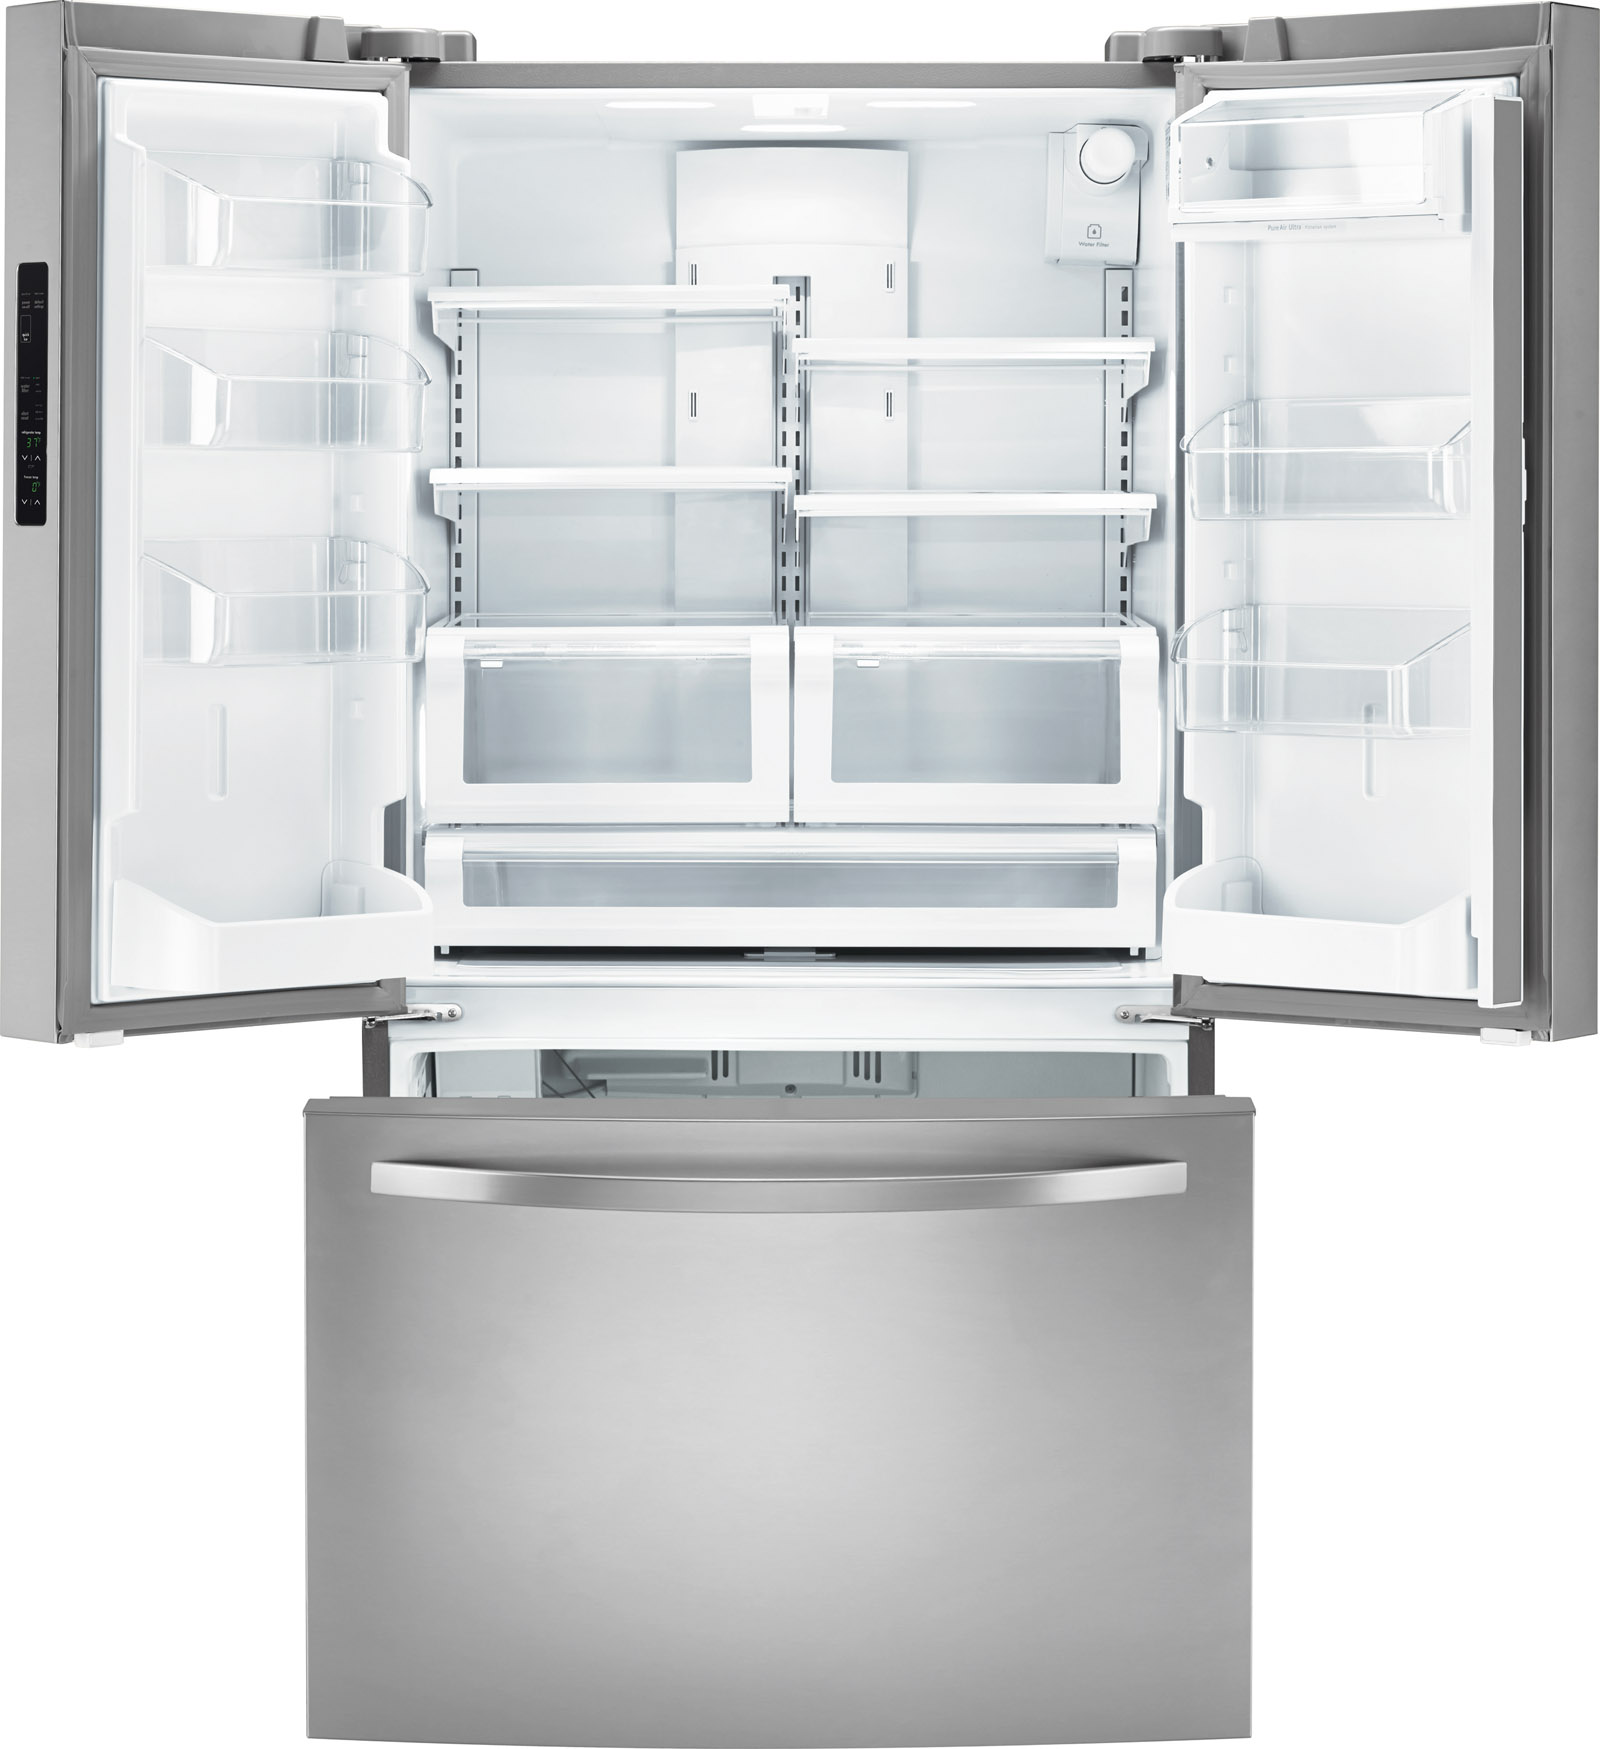 Kenmore 70423 22.3 cu. ft. Counter-Depth French Door Refrigerator - Stainless Steel